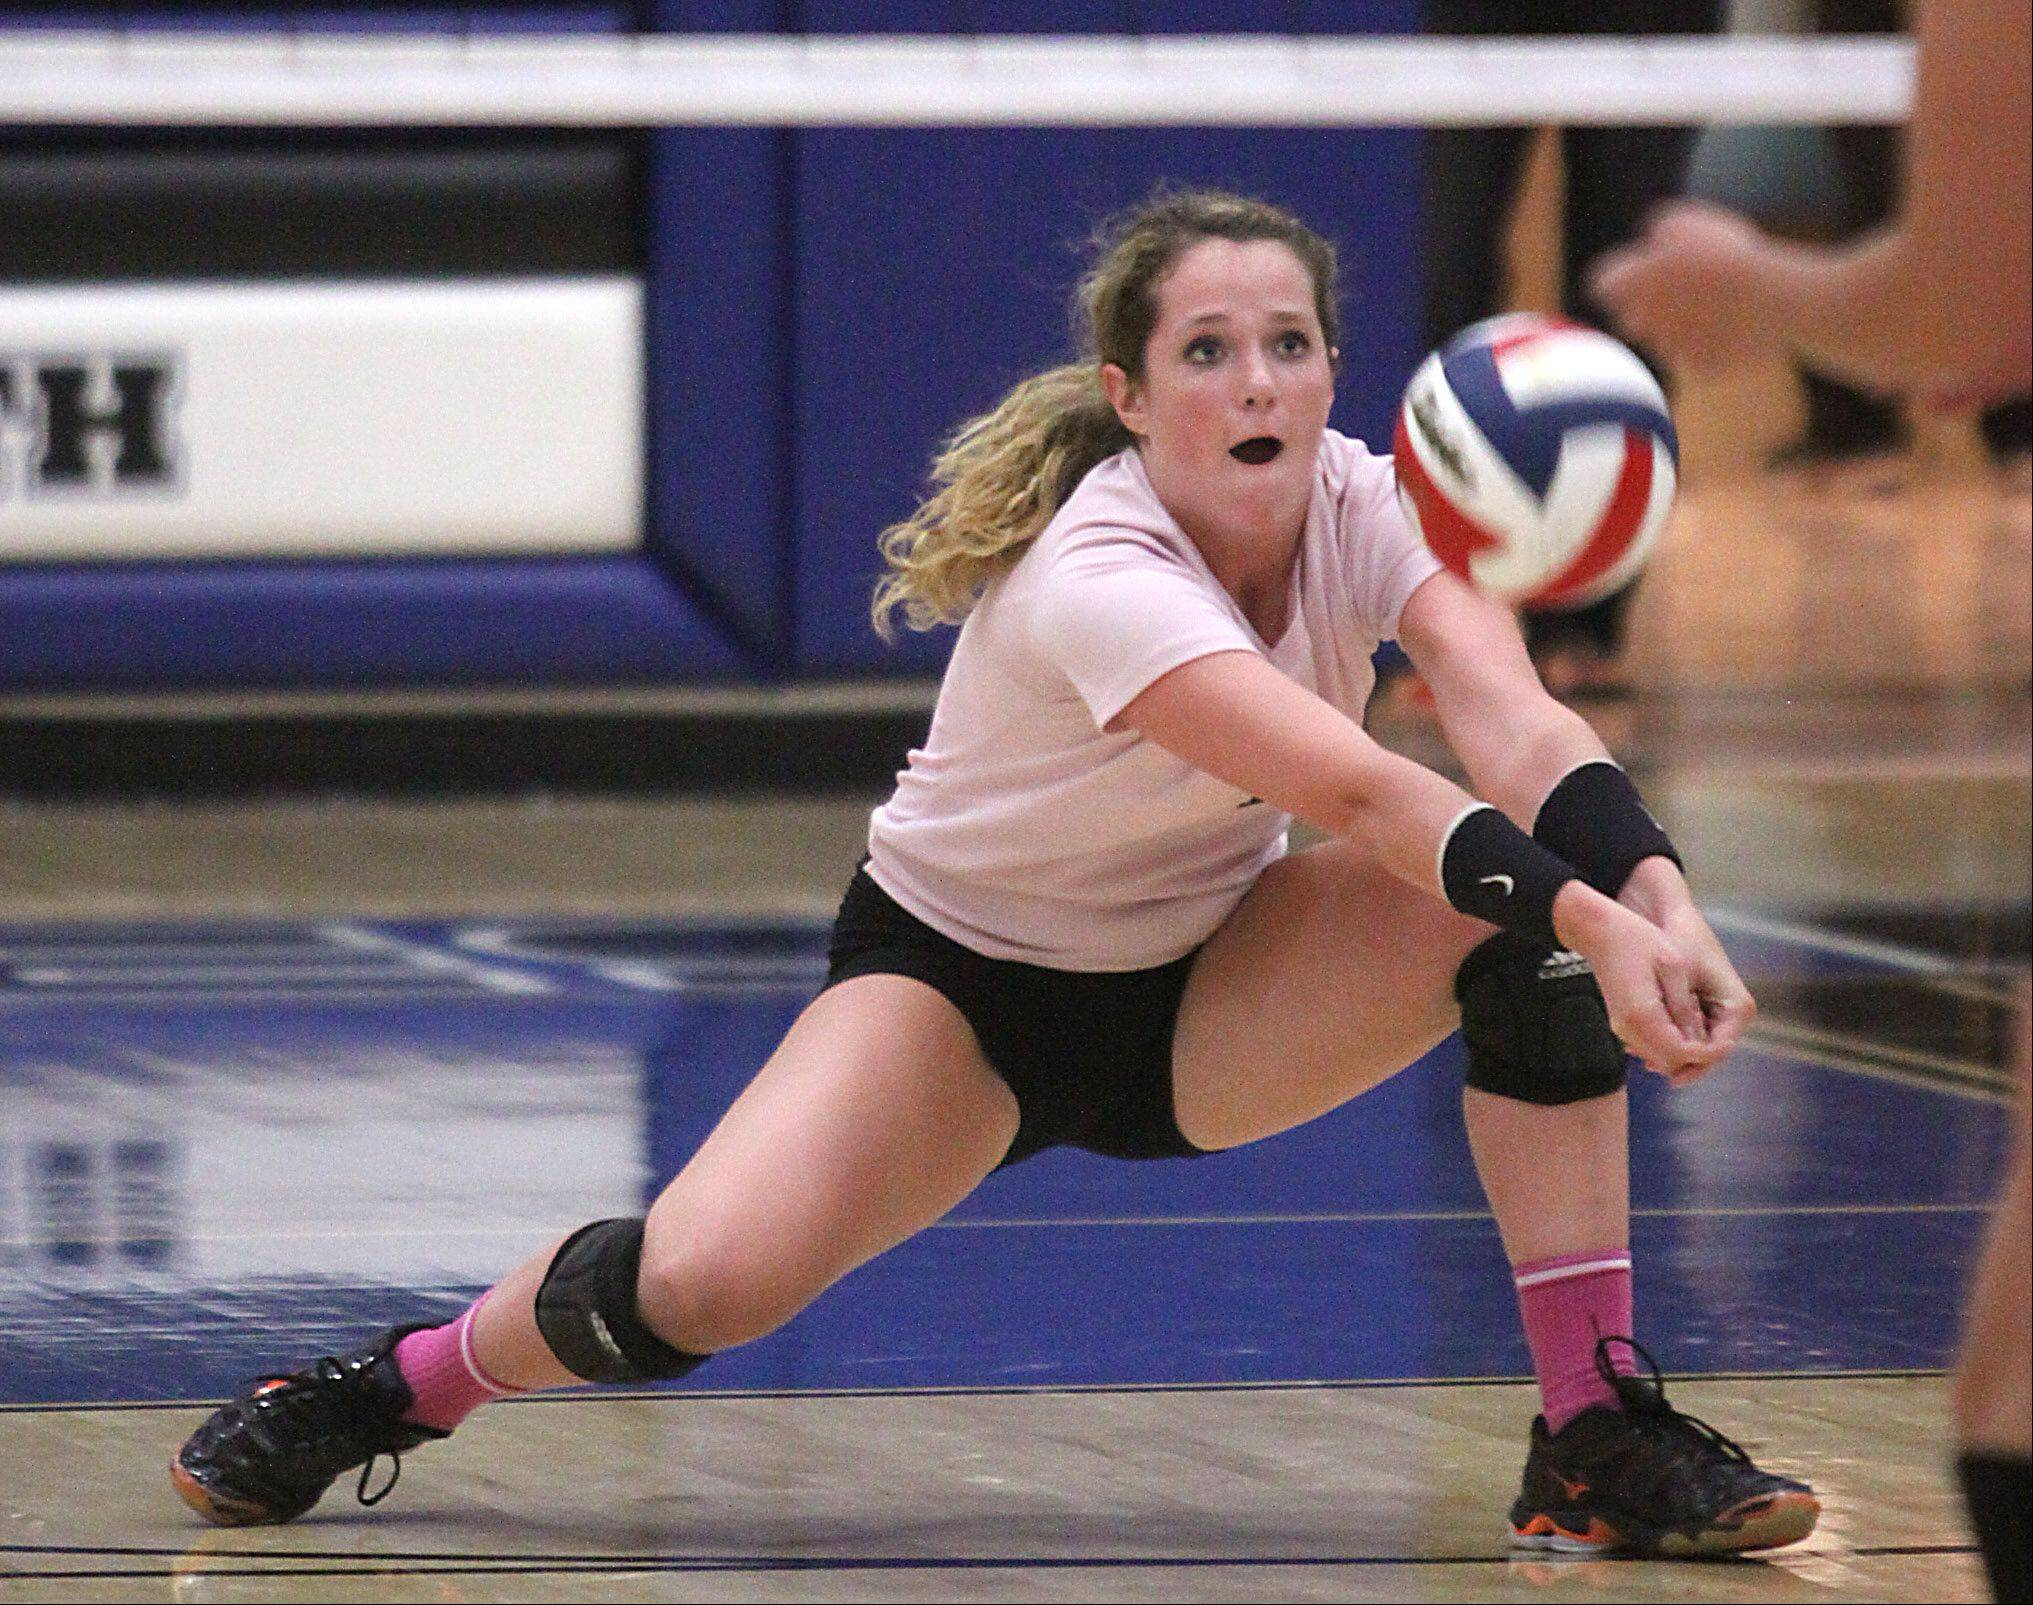 St. Charles East's Anne Hughes hits the ball during a varsity volleyball game at St. Charles North on Tuesday evening.